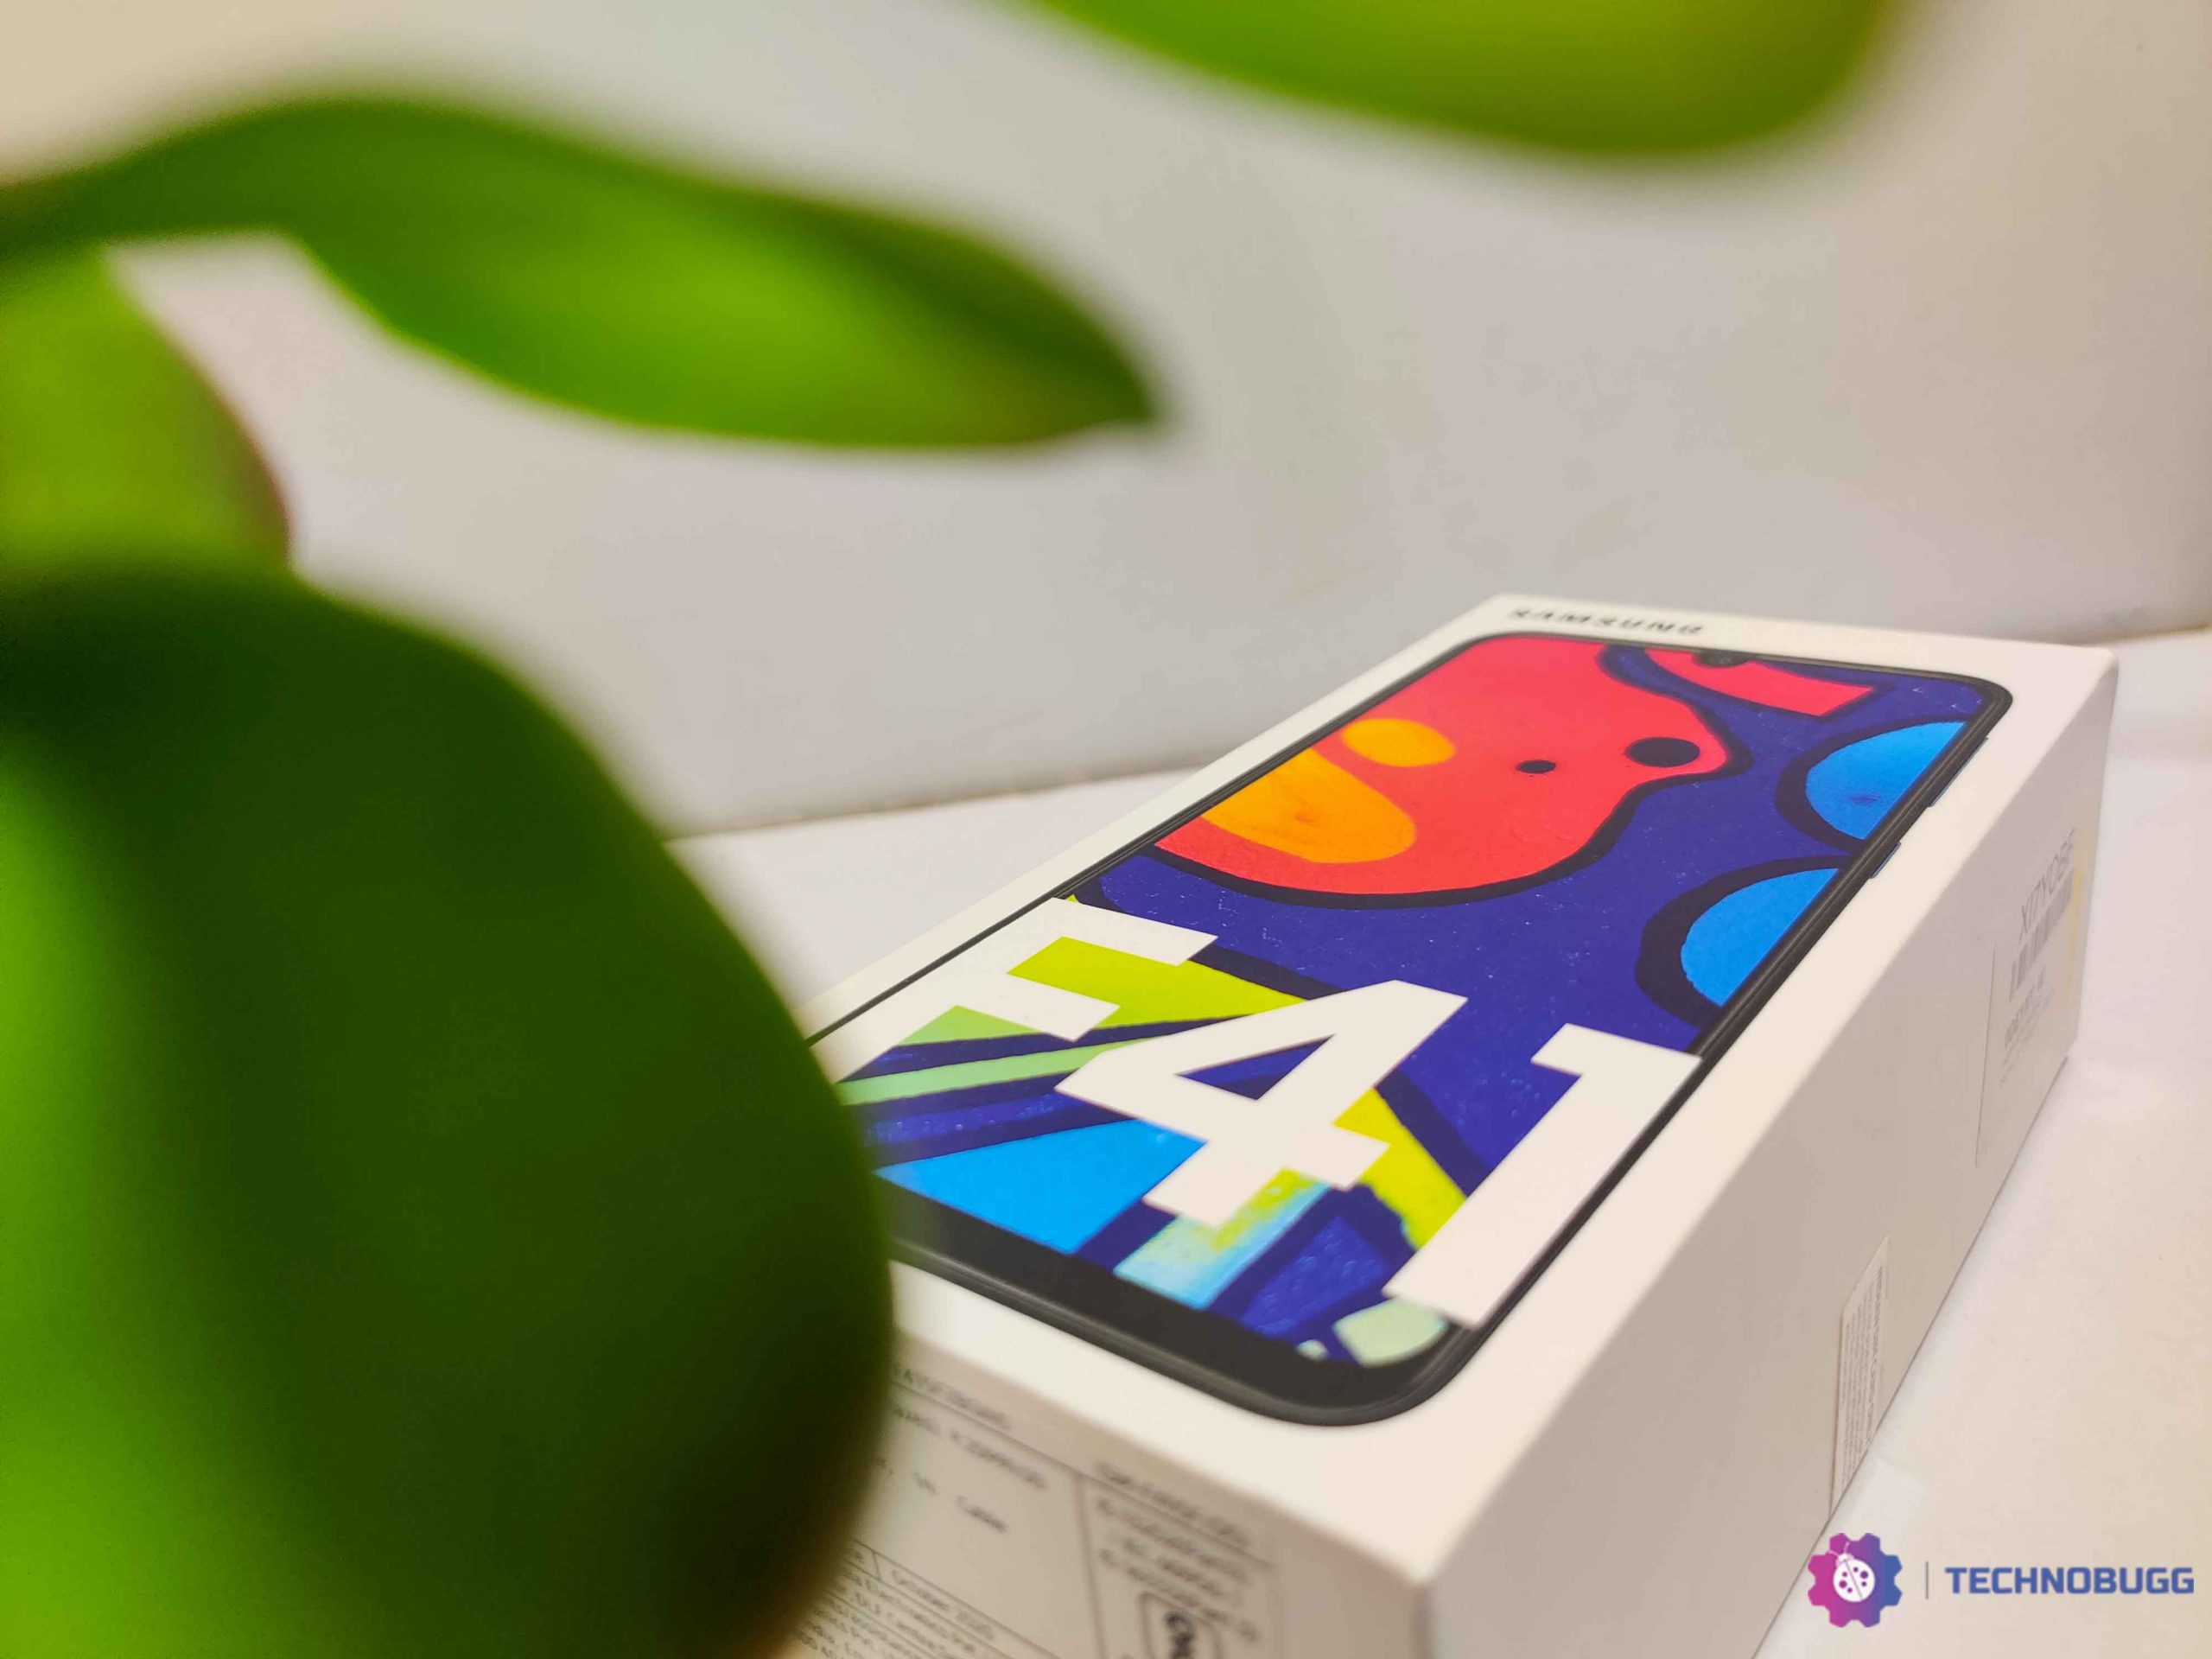 Samsung Galaxy F41 Review - A Solid Smartphone